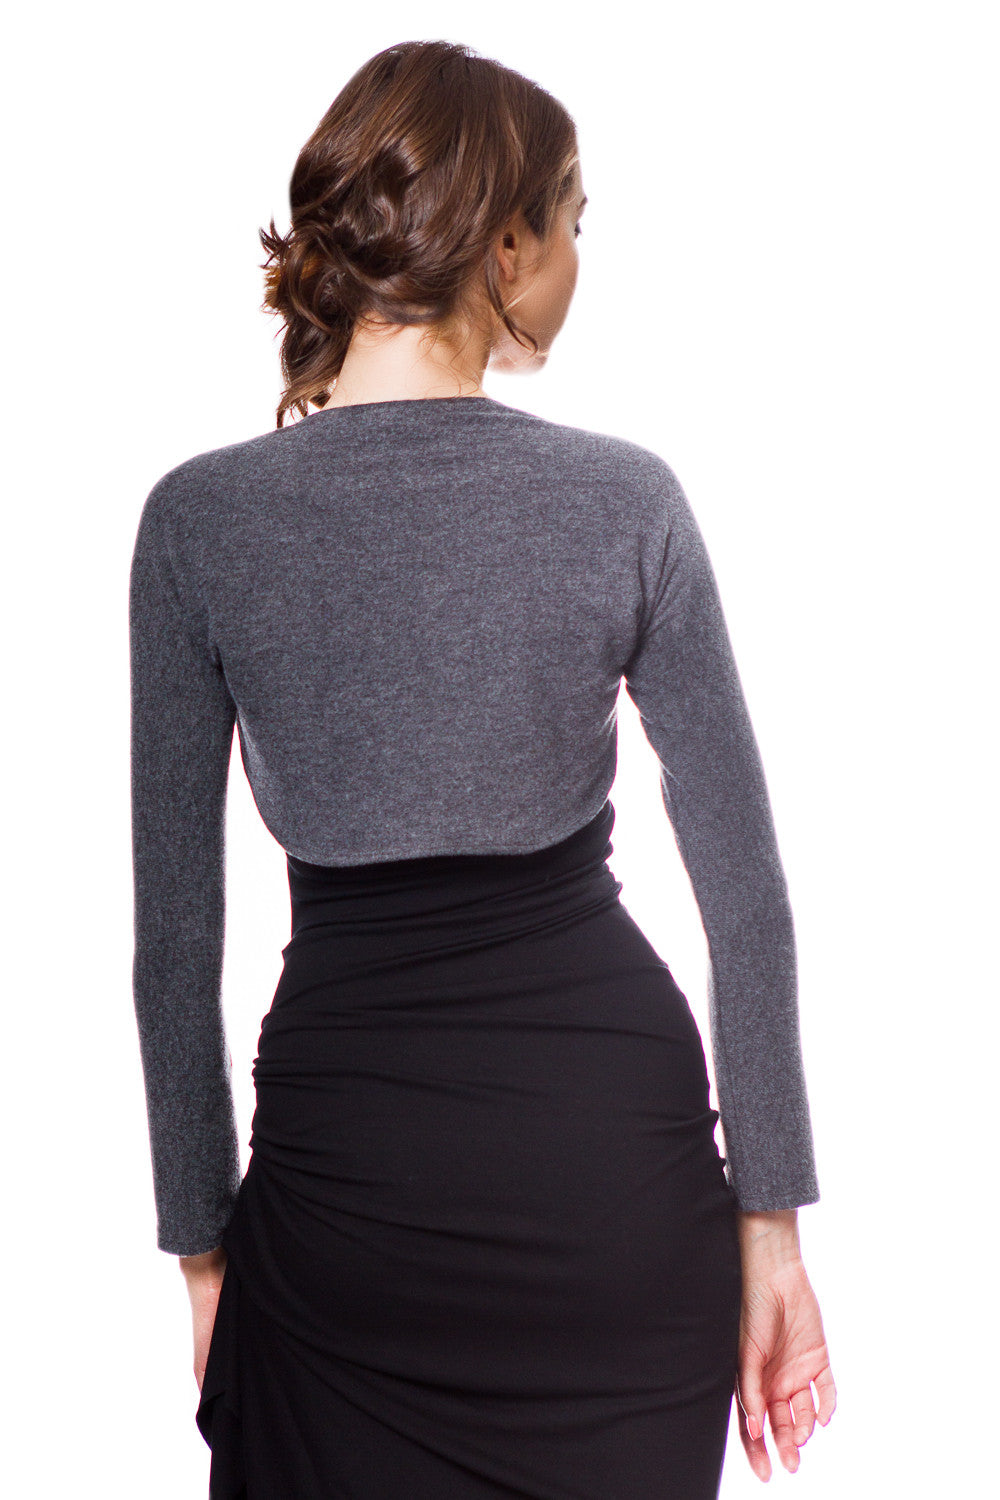 Long Sleeves Fitted Bolero Shrug Sweater